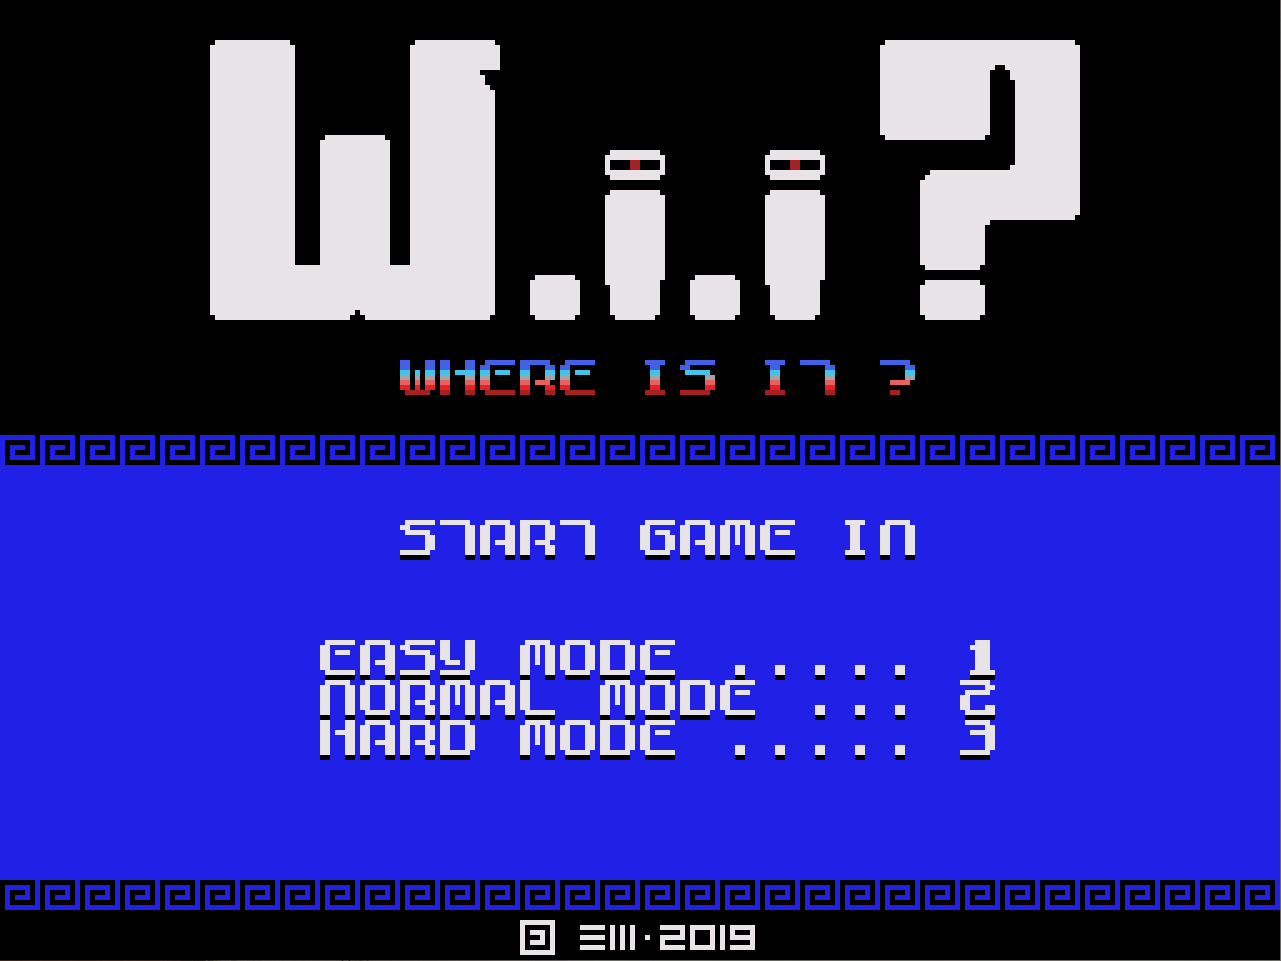 wii210.png